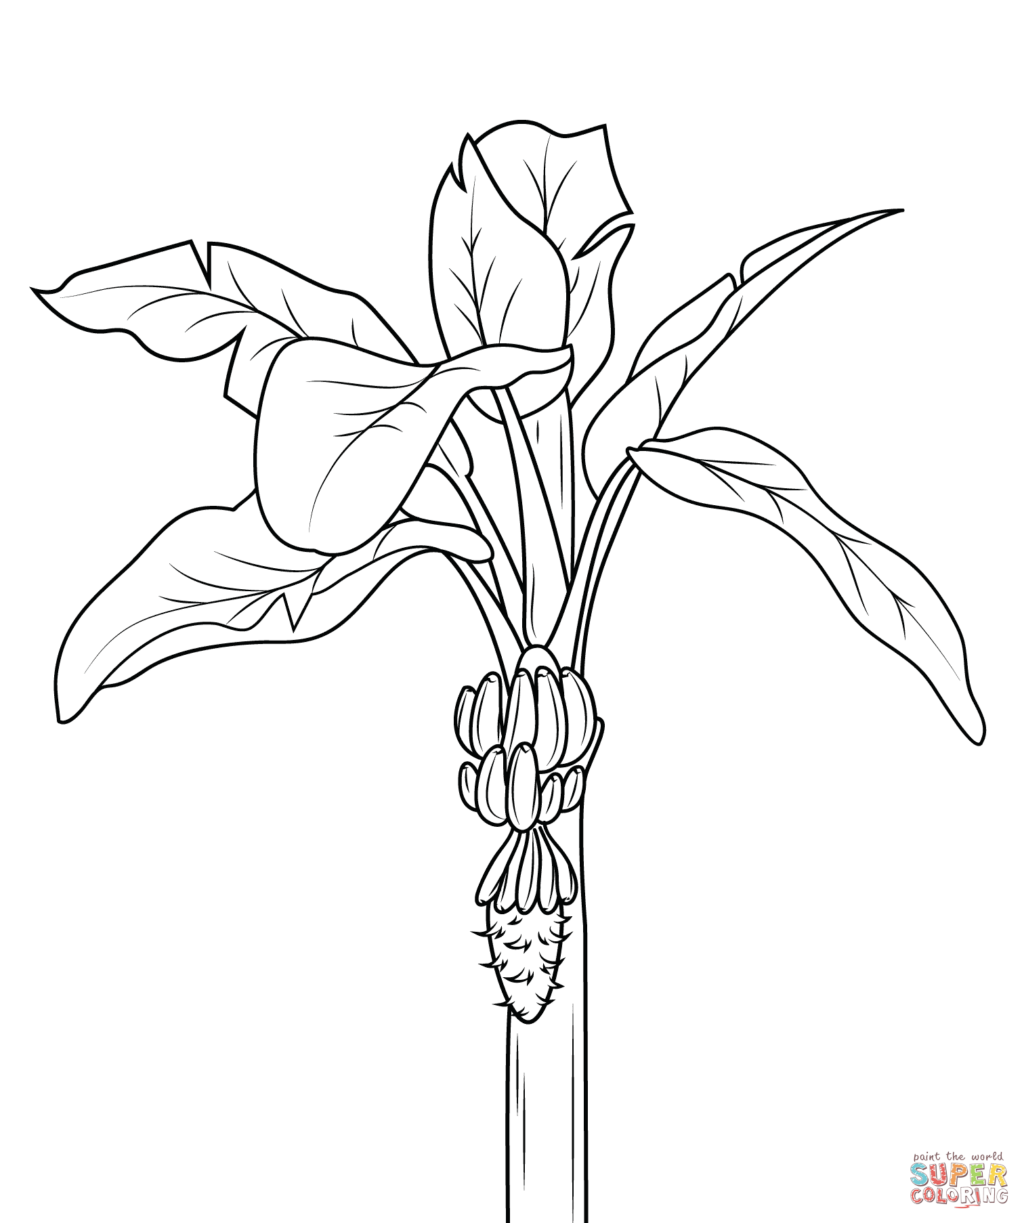 1024x1223 Coloring Page Banana Tree Kids Drawing And Coloring Pages